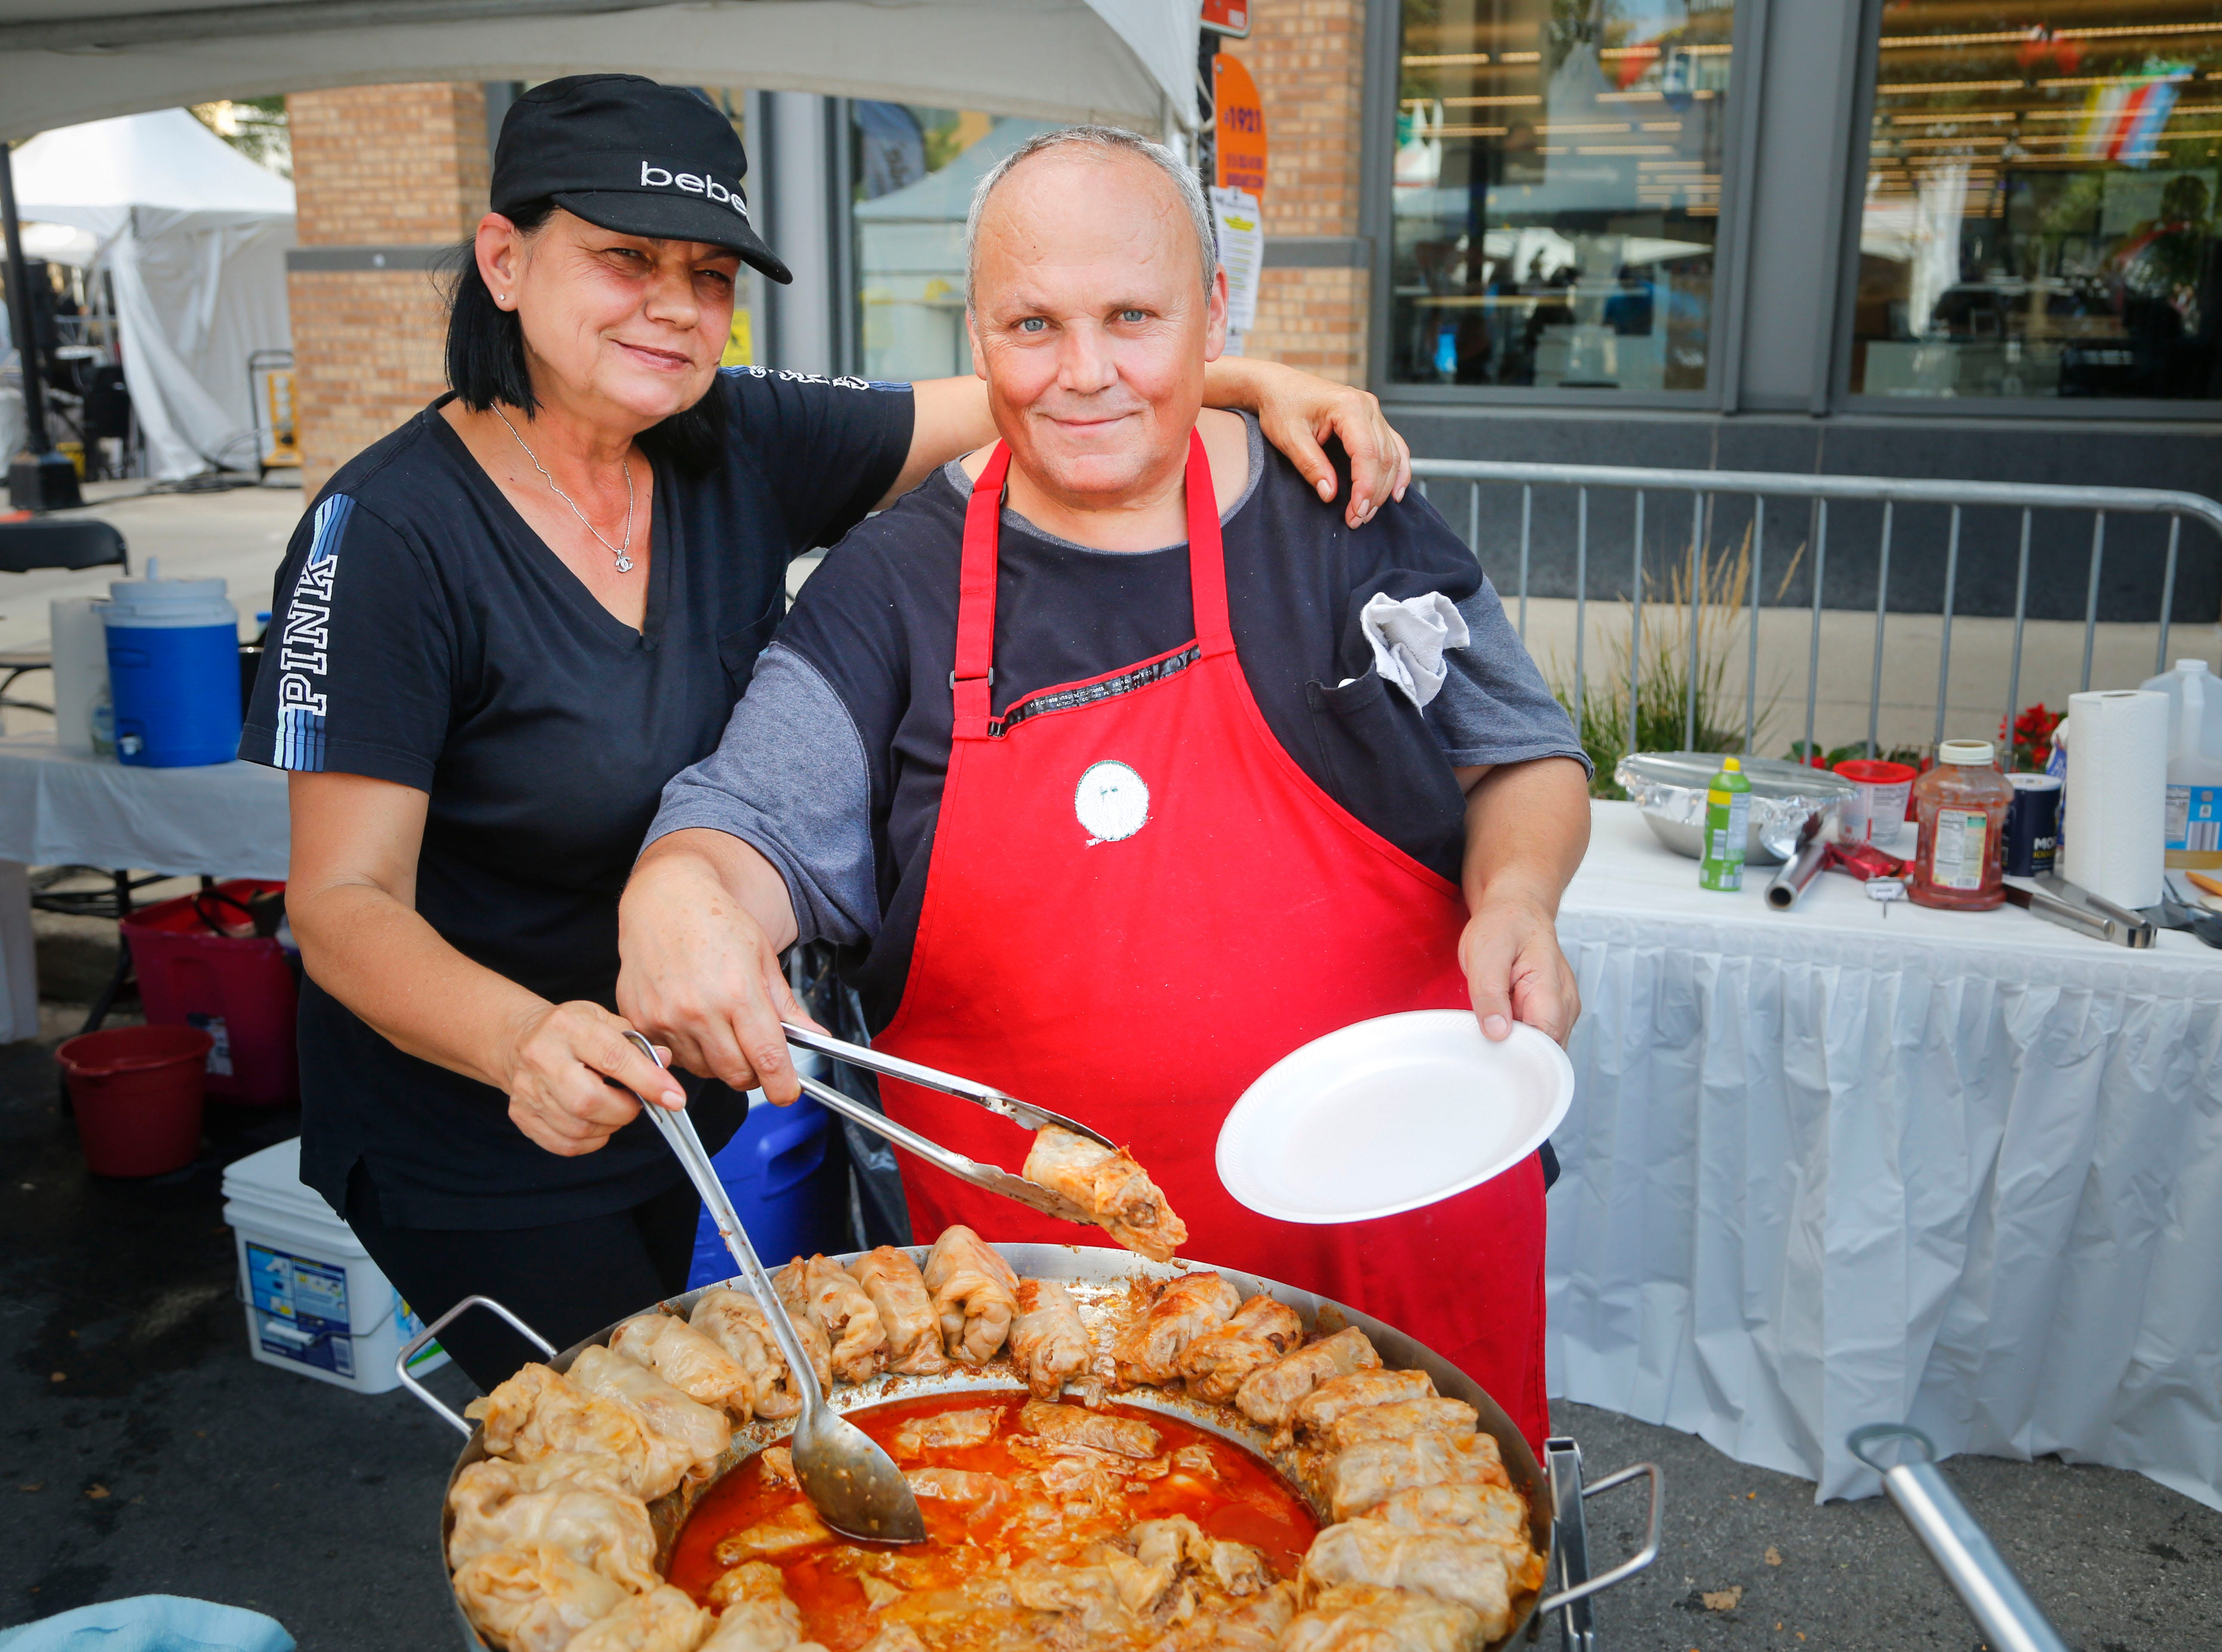 Rada and Joe Dzehvid load up a plate of food at the Papillon Bosnian Food booth at the World Food and Music Festival in Des Moines Sept. 14, 2018.